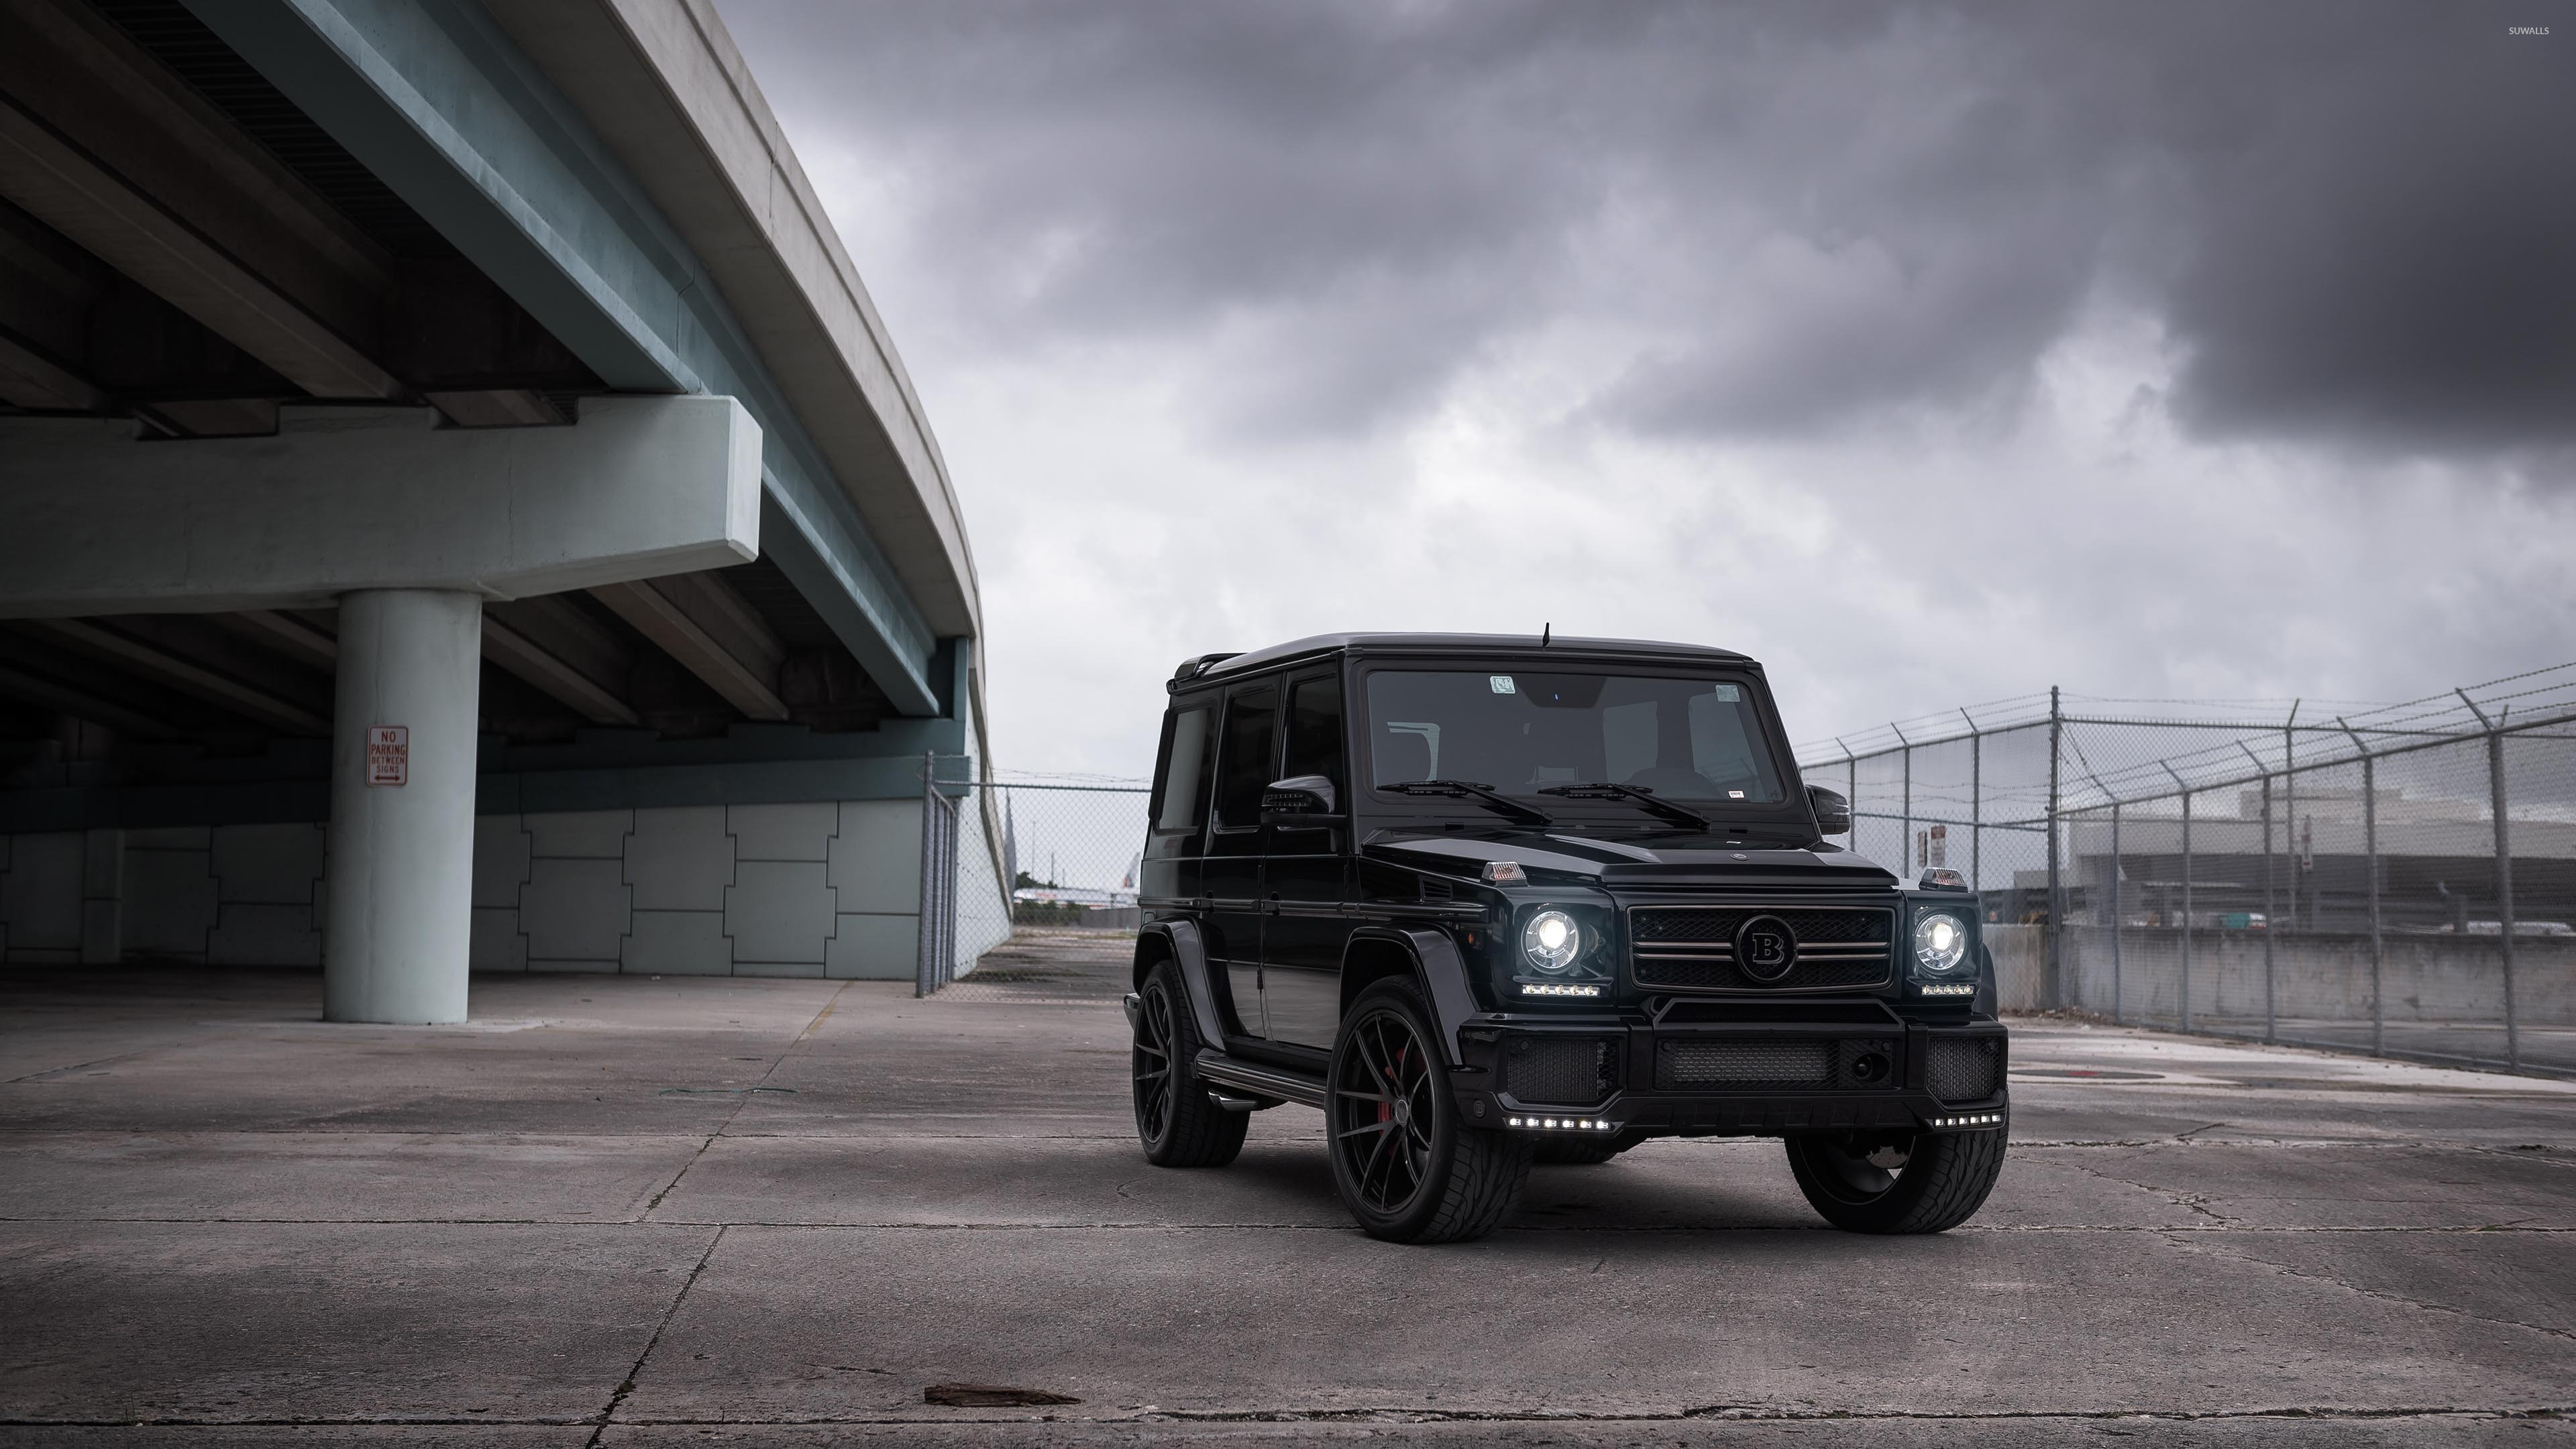 Free download Download wallpaper 3840x2400 mercedes benz g500 brabus suv  [3840x2400] for your Desktop, Mobile & Tablet | Explore 32+ Mercedes SUV  Wallpapers | Mercedes SUV Wallpapers, Mercedes Wallpaper, Mercedes  Background | 2160x3840